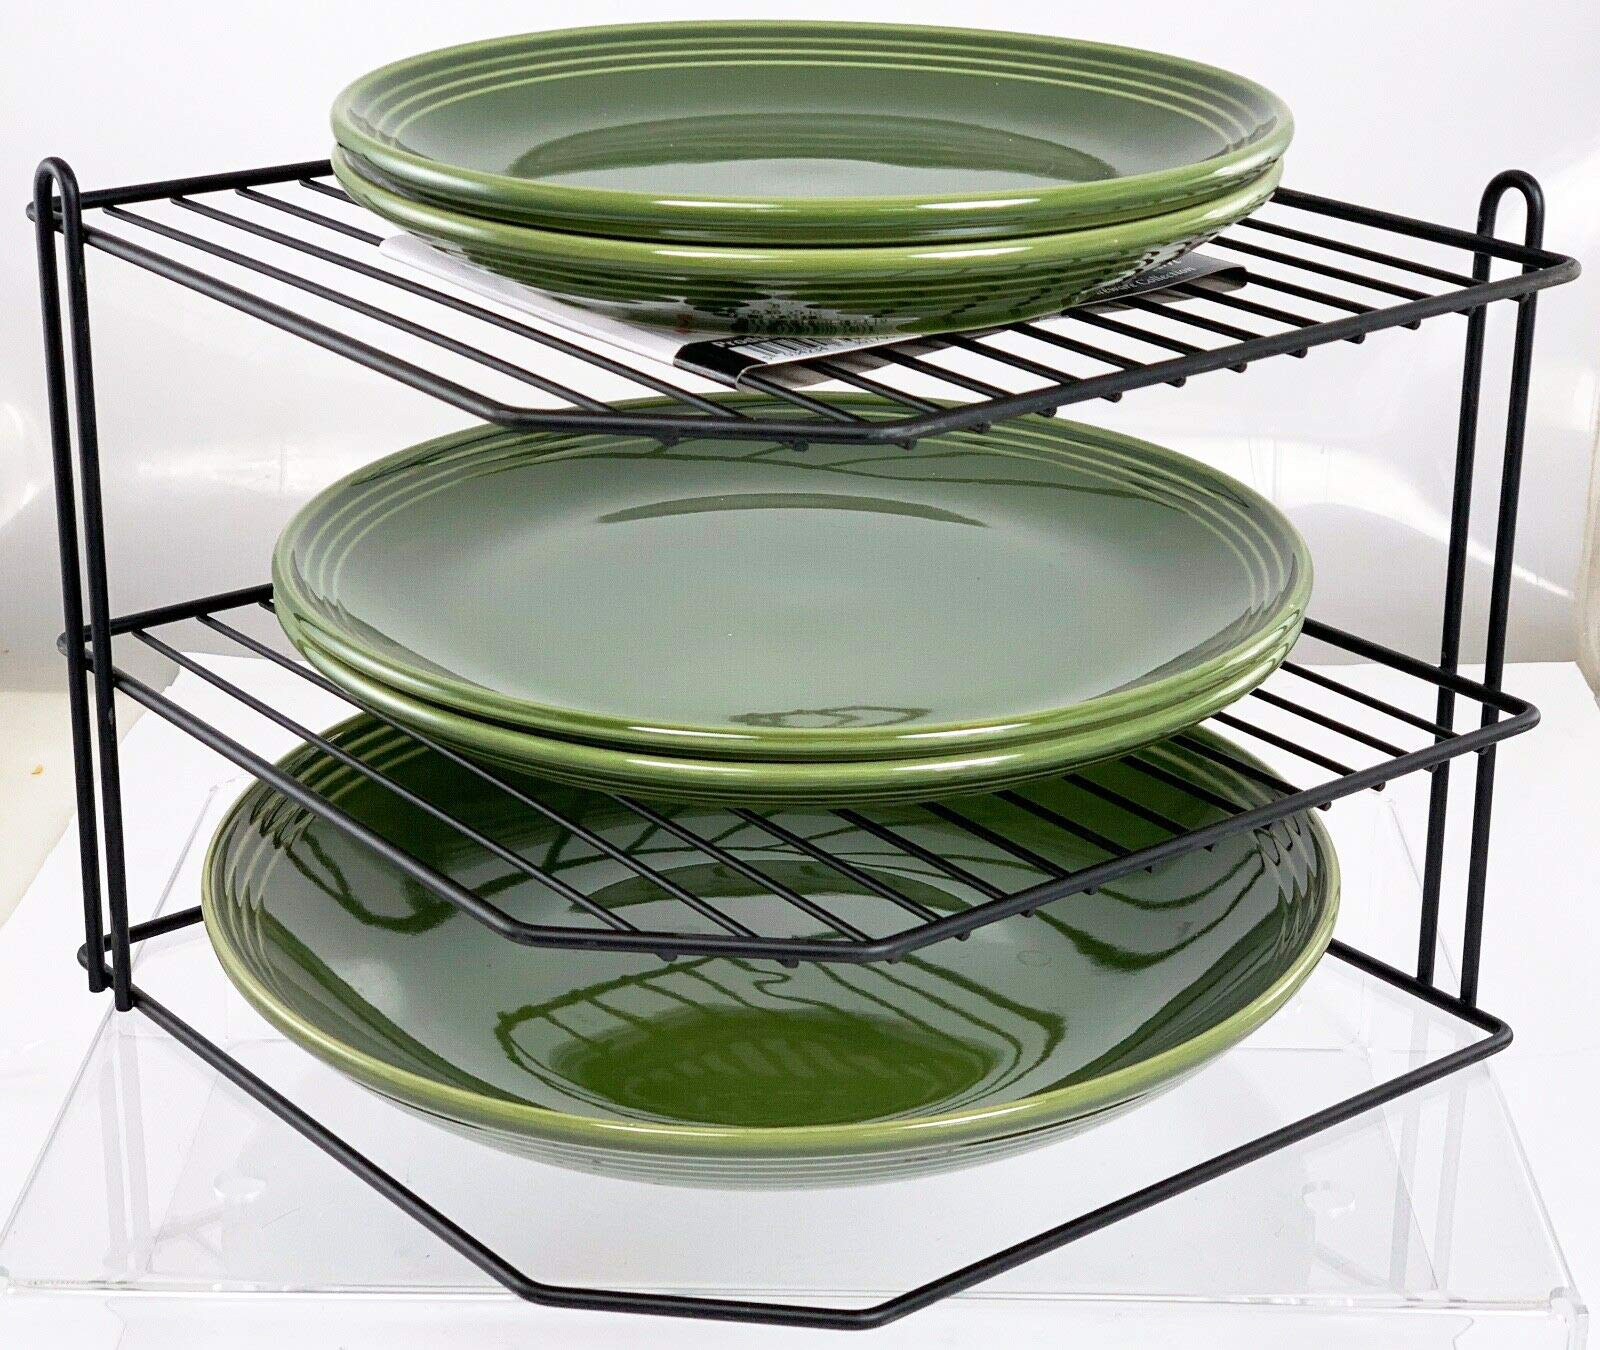 Kitchen Organizer Pot Lid Rack Spoon Tray Stand Holder Shelf Cooking Dish Rack Pan Cover Stand Kitchen Accessories Home Storage